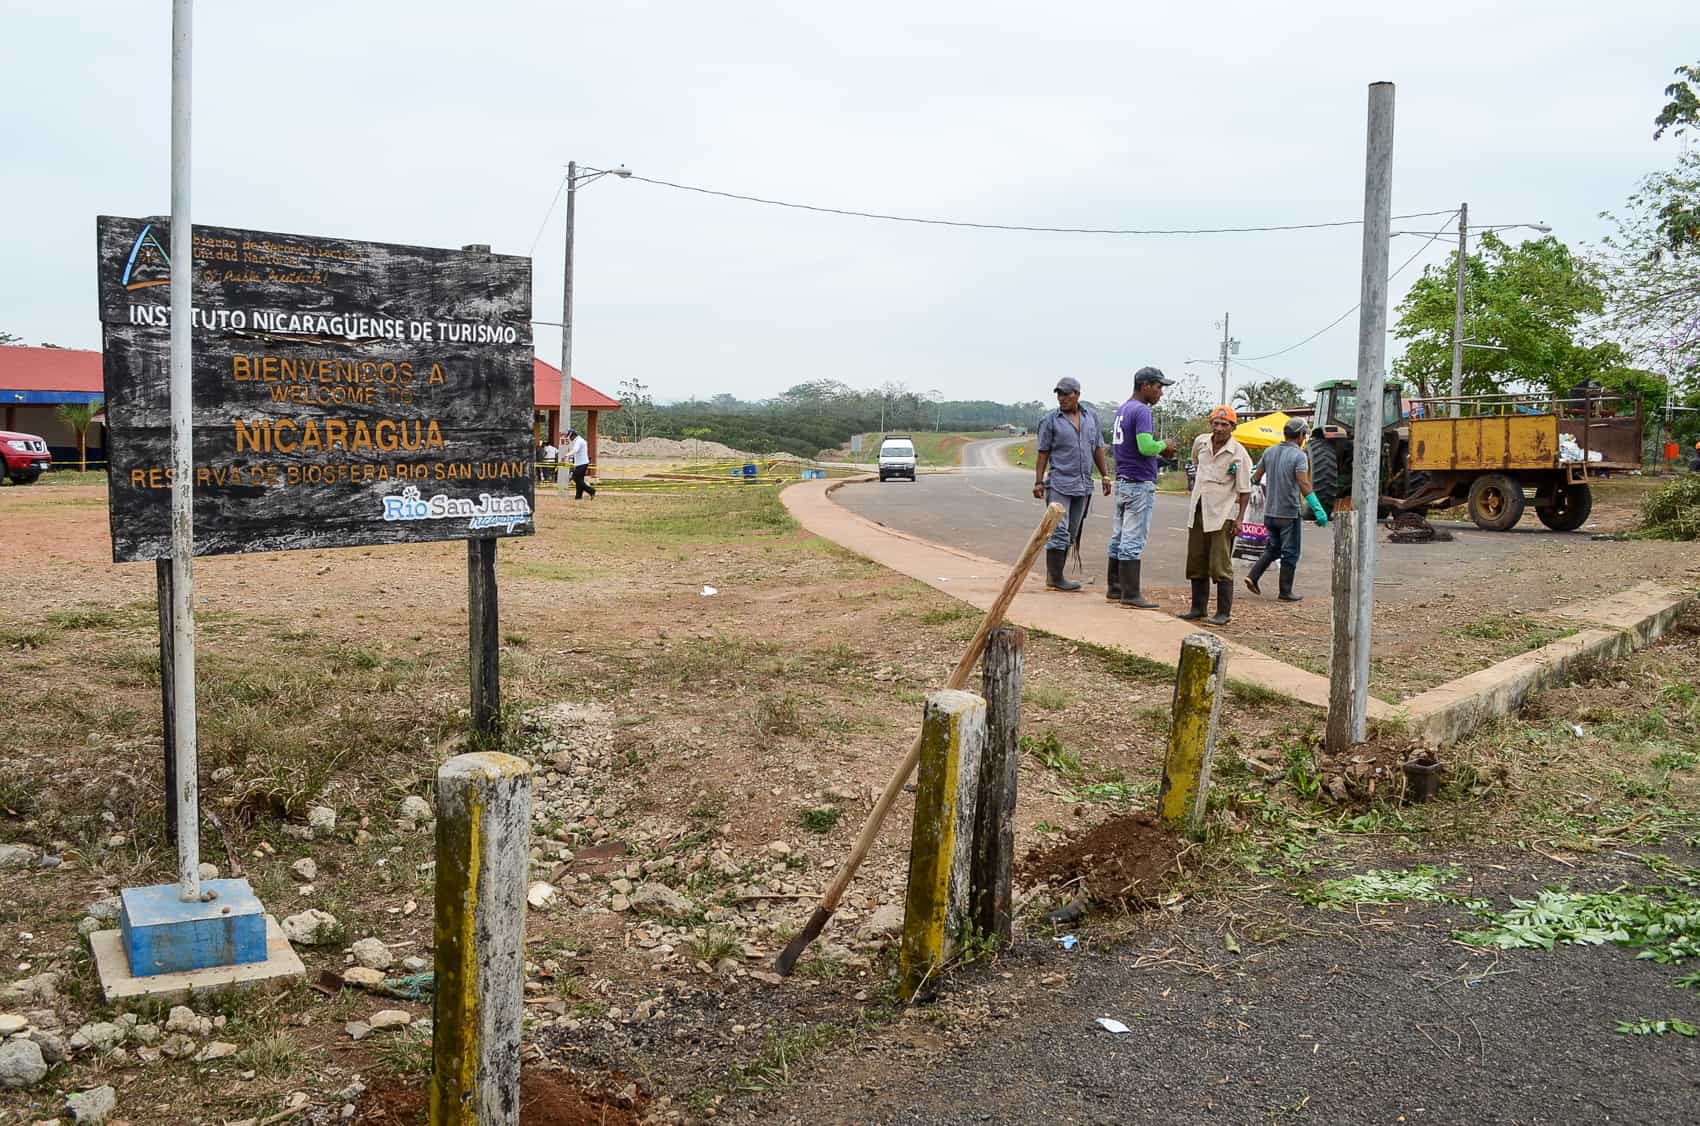 Nicaraguan workers make preparations at the border with Costa Rica near Los Chiles in the Costa Rican province of Alajuela. On May 2, 2015 the Las Tablillas border crossing will be inaugurated.